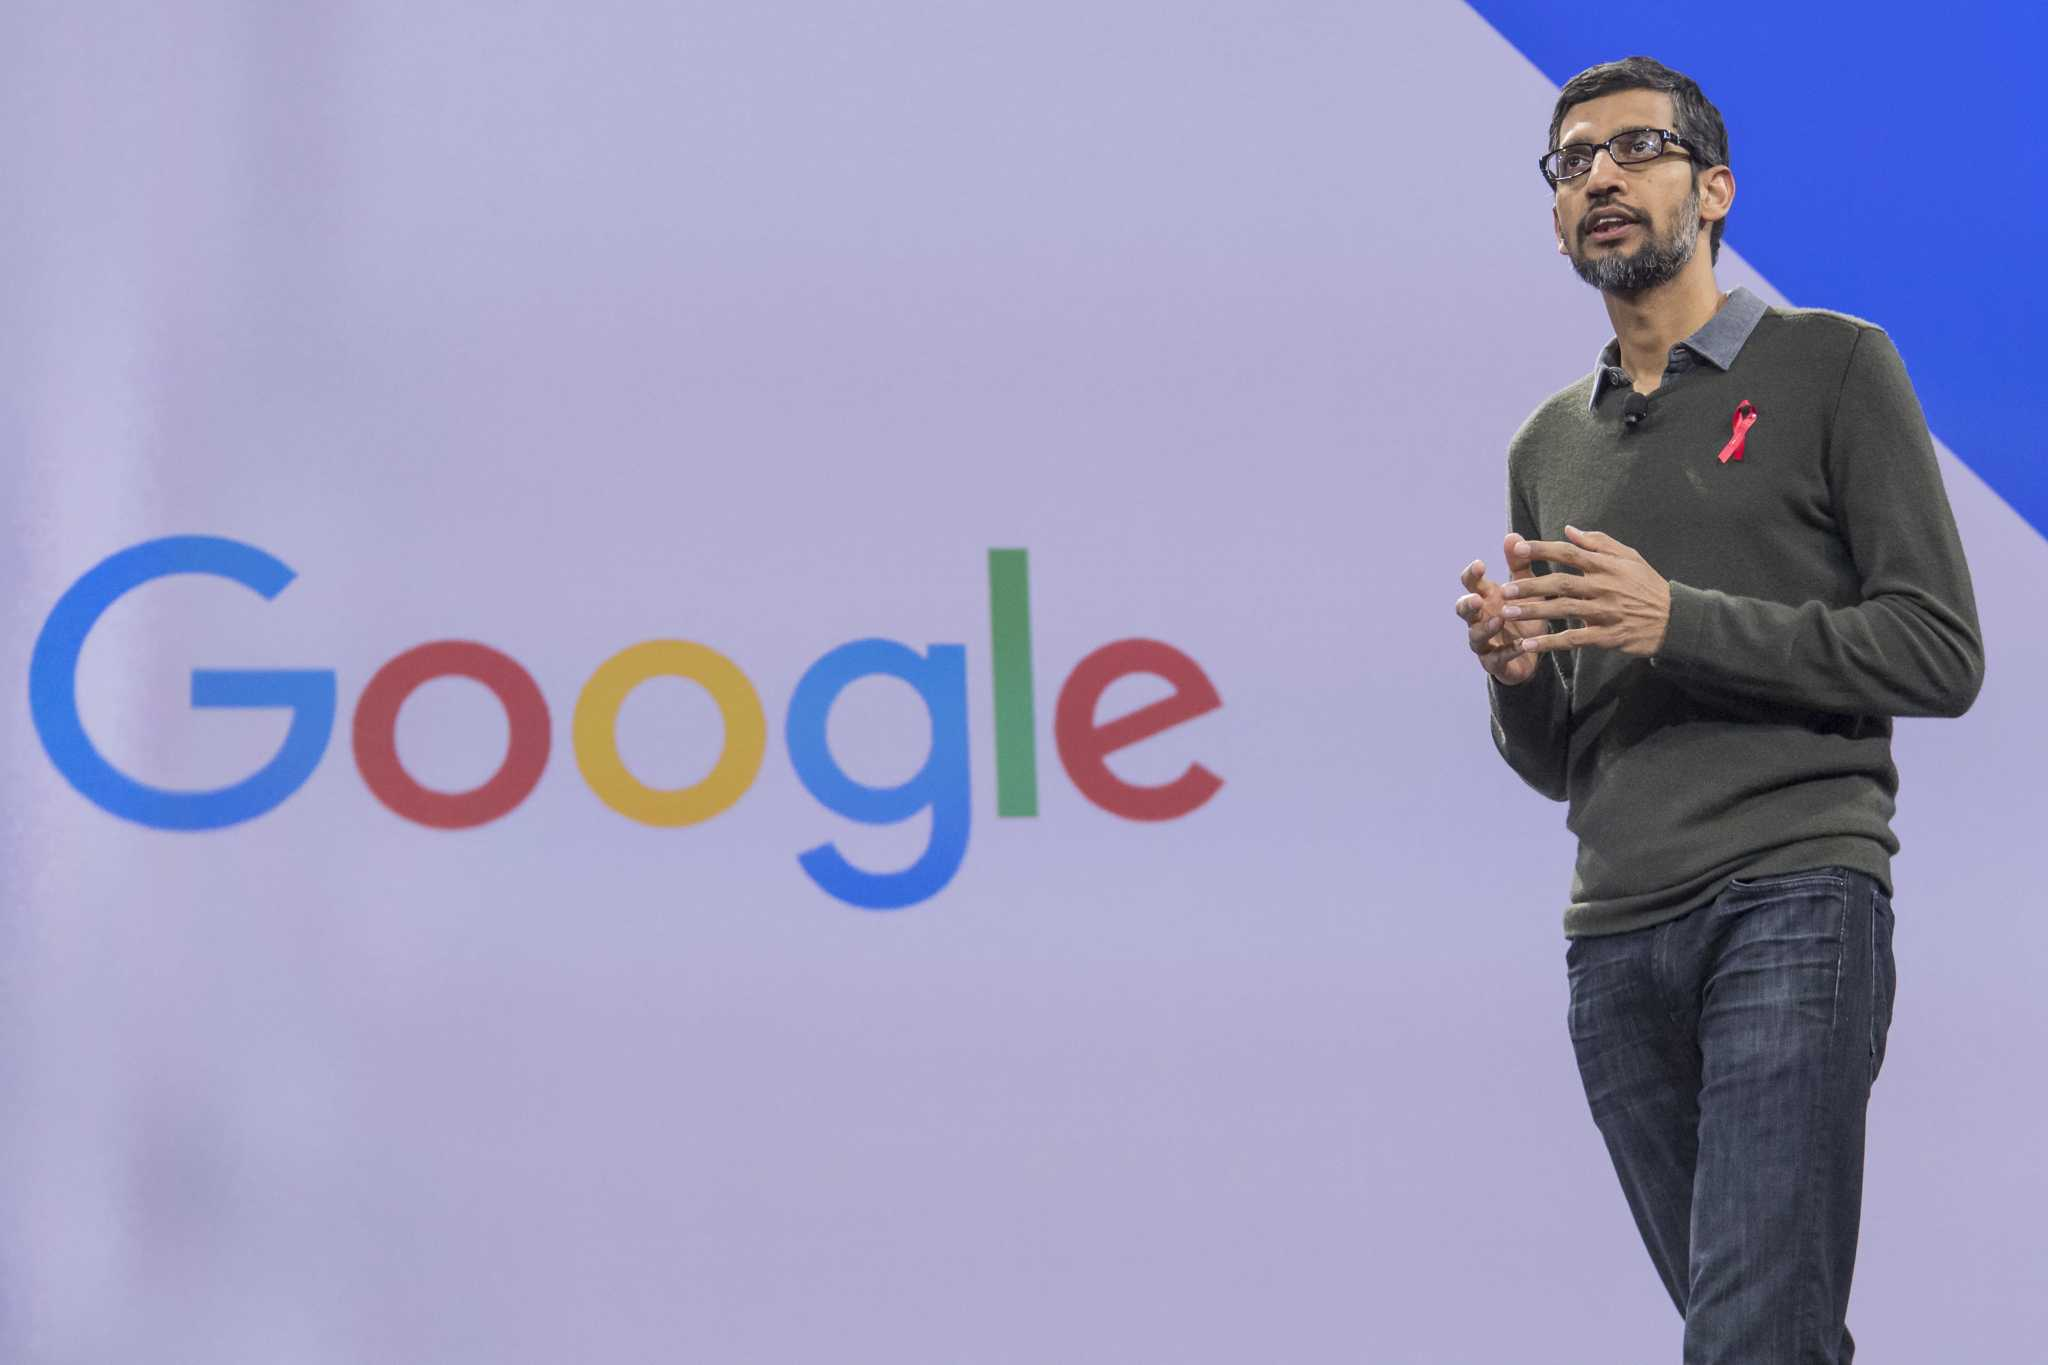 Kết quả hình ảnh cho Google+ will shut down 4 months early after Google discovered a 2nd bug affecting user data for more than 52 million